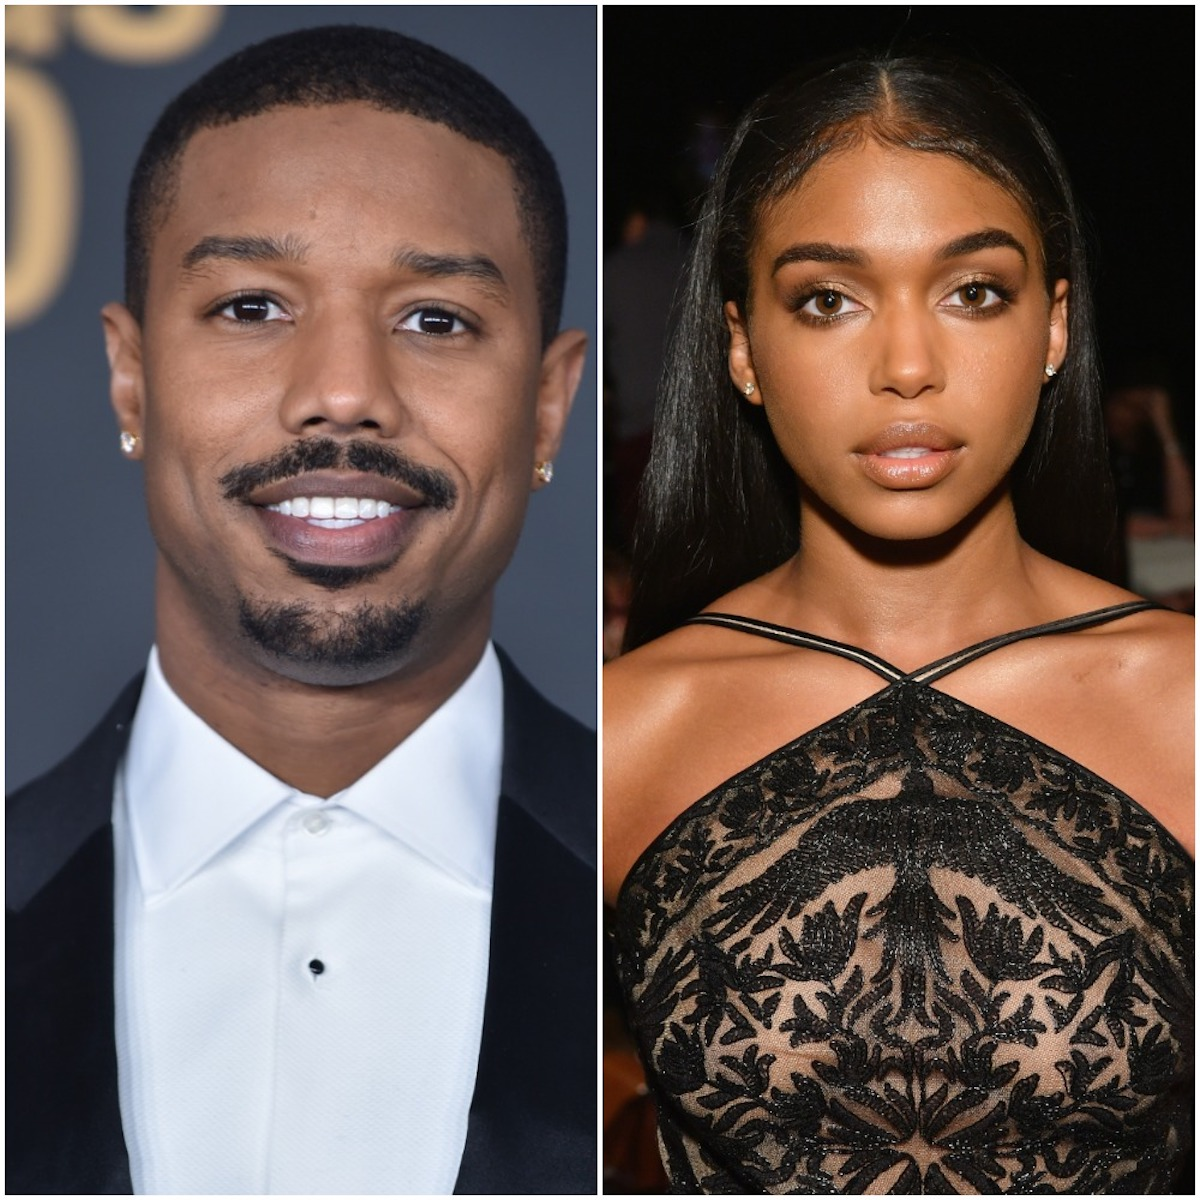 Jordan And Lori Harvey Reveal Their Nicknames For One Another